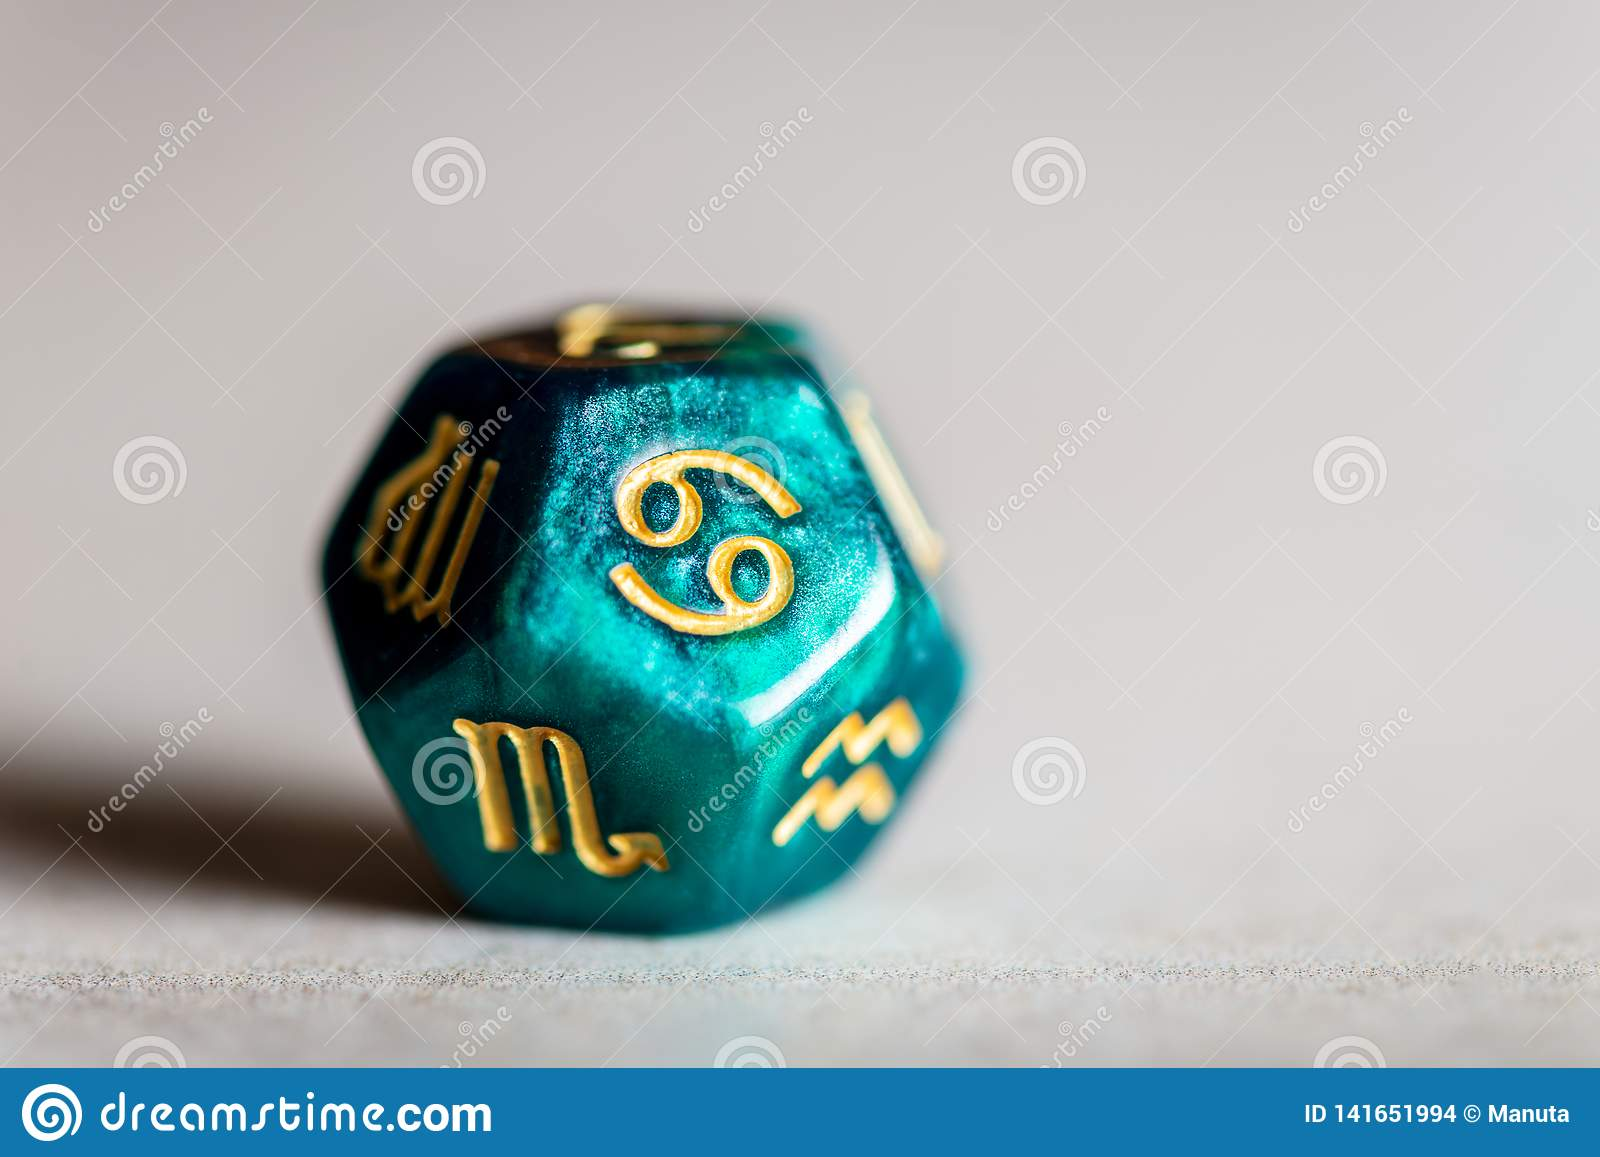 Astrology Dice with zodiac symbol of Cancer